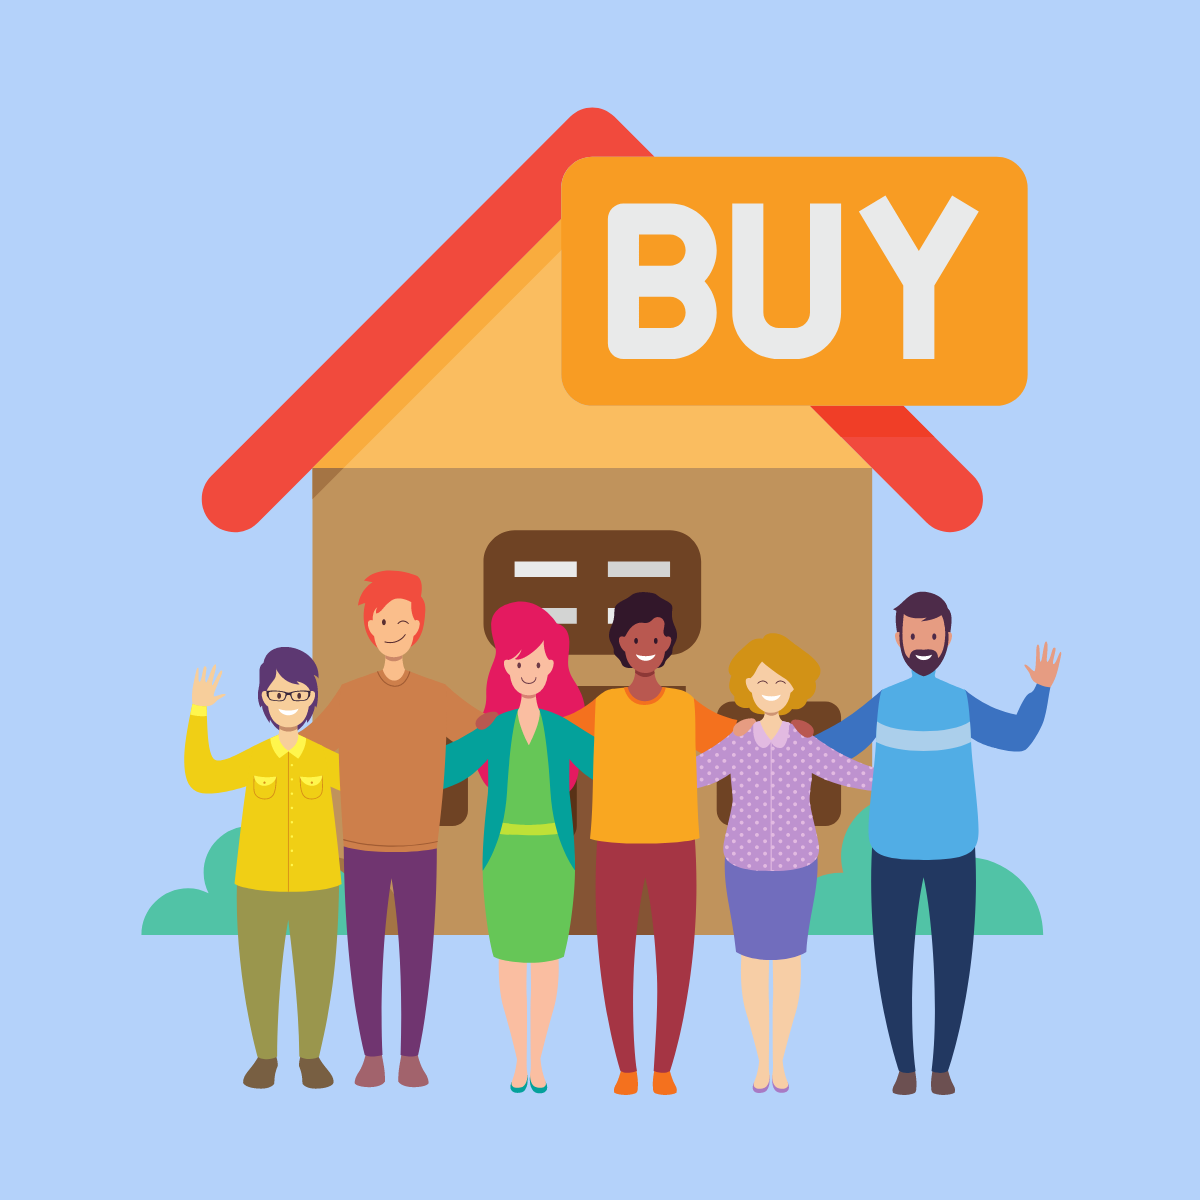 Can You Buy A House With Friends?